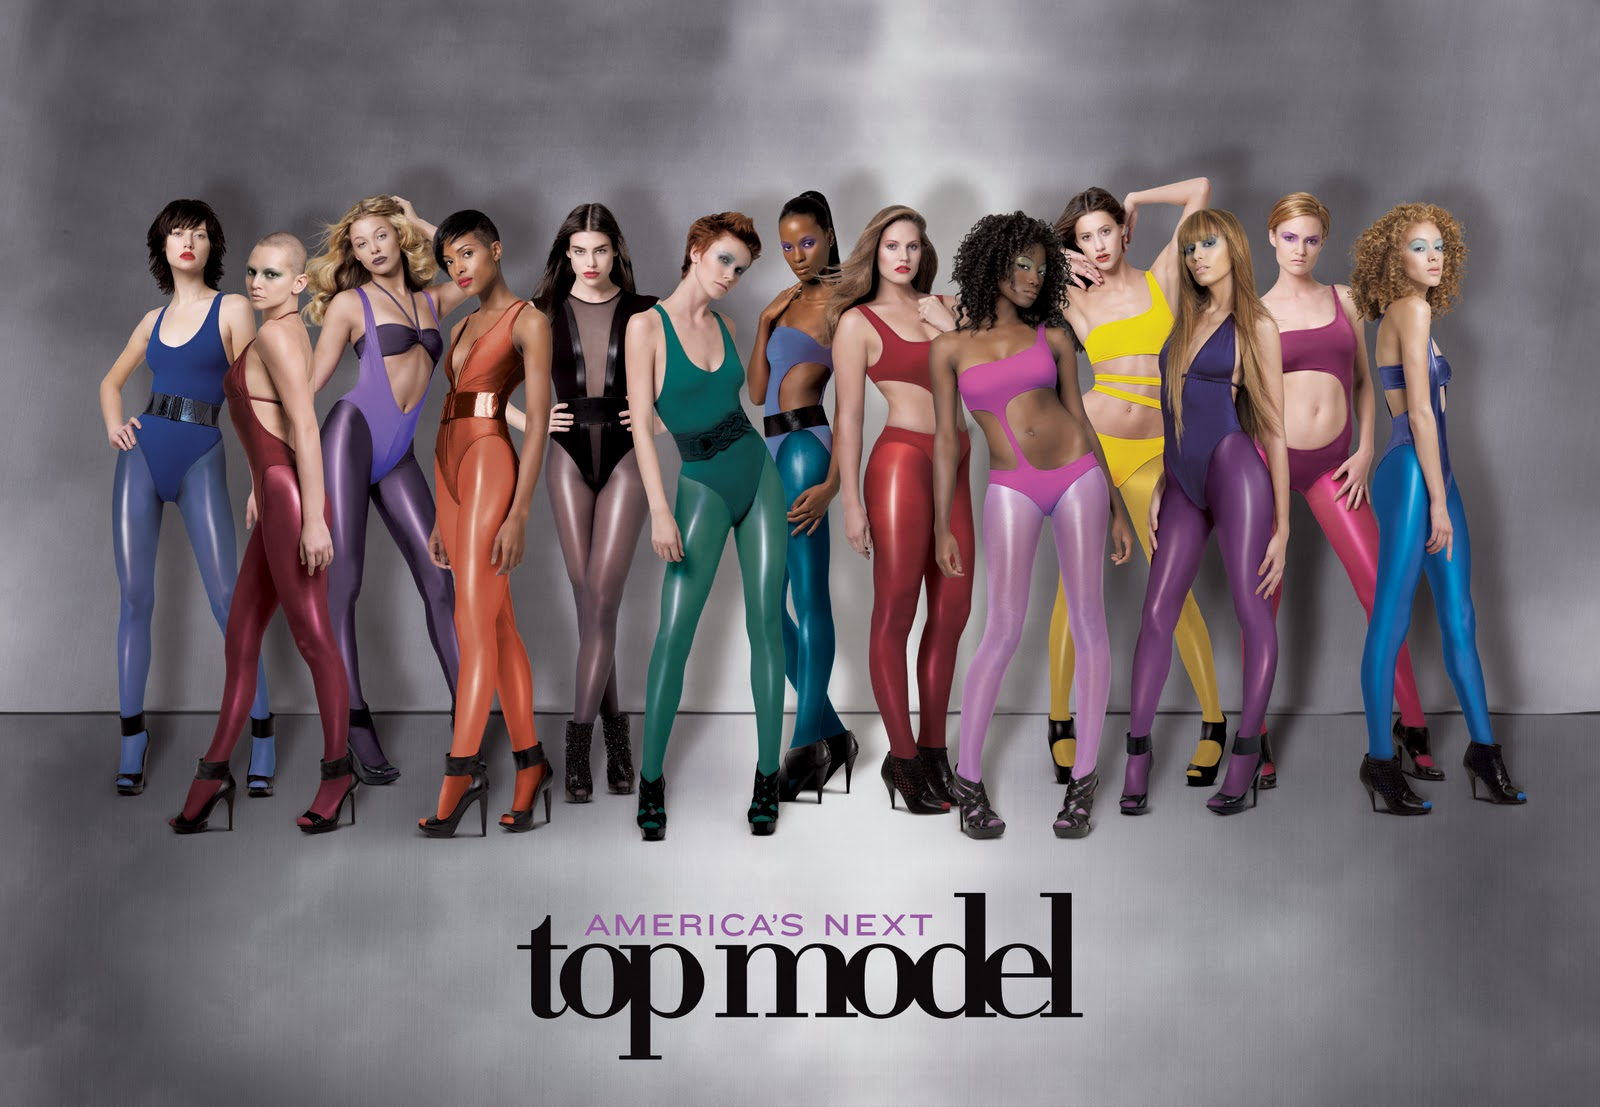 America's Next Top Model: Season 14